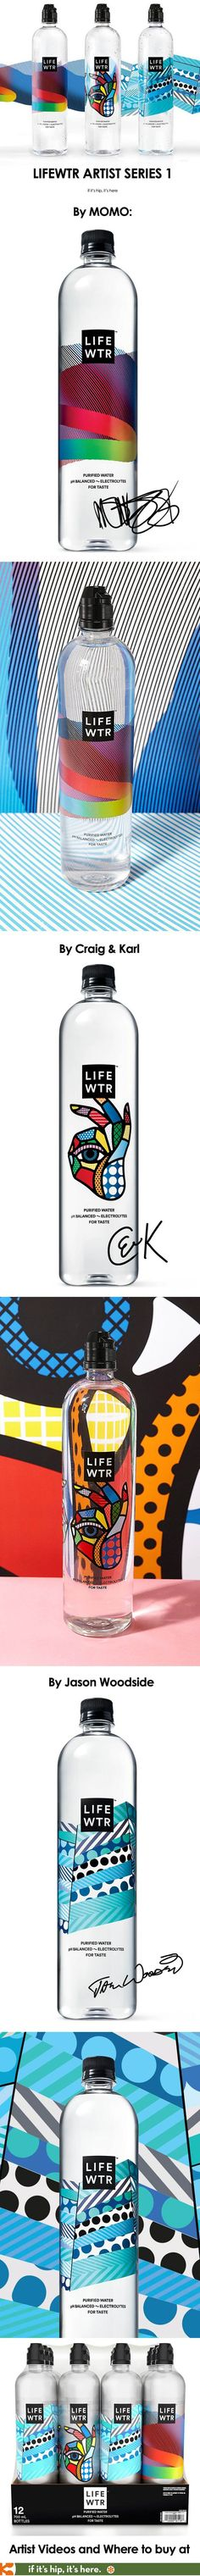 LIFEWTR introduces the first Artist series. Three specially designed bottles by MOMO, Craig & Karl and Jason Woodside: